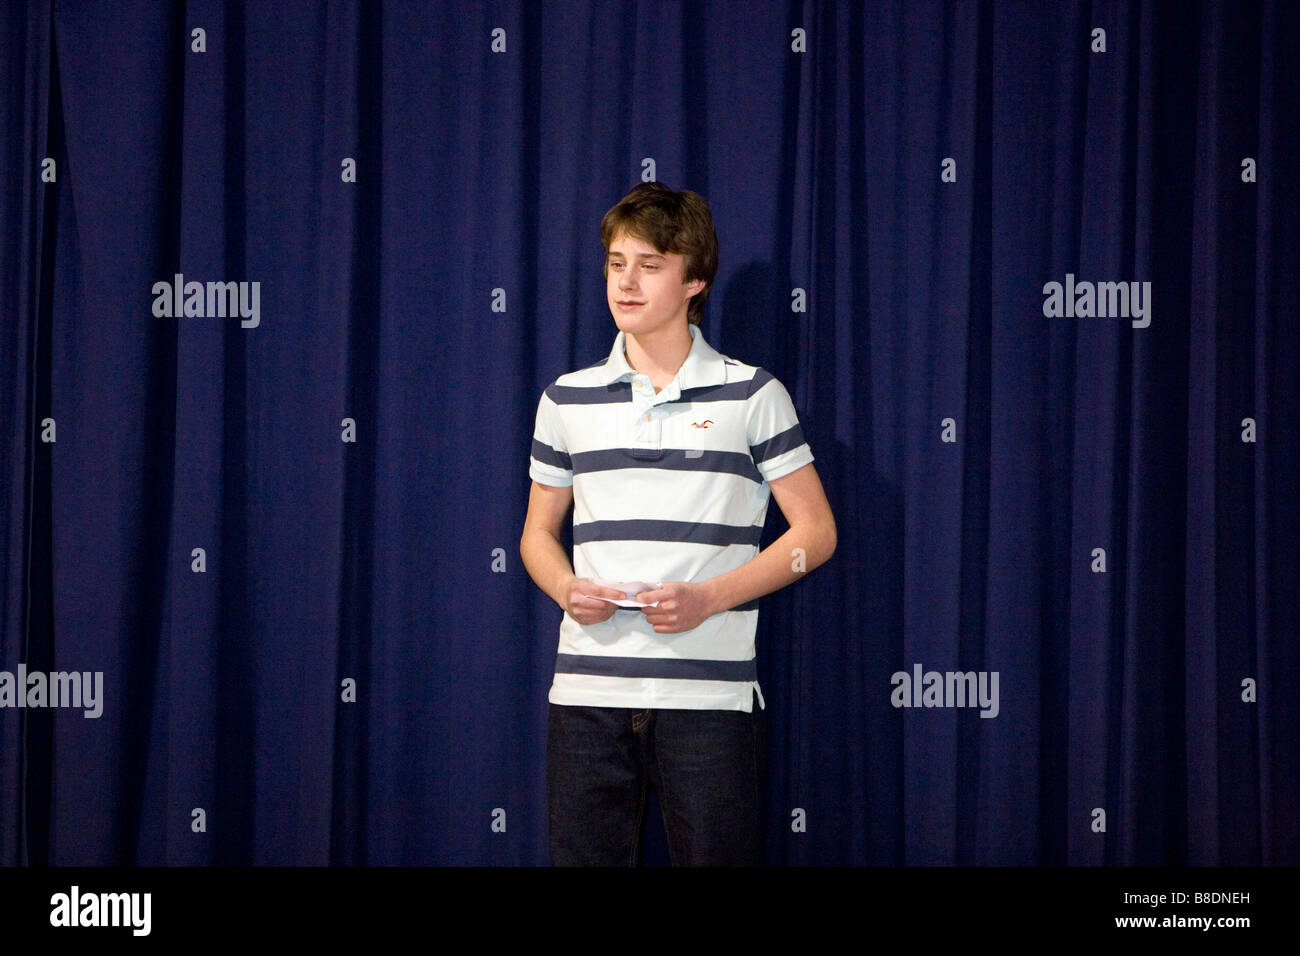 North America Canada Ontario boy holding cue cards while making speech Stock Photo